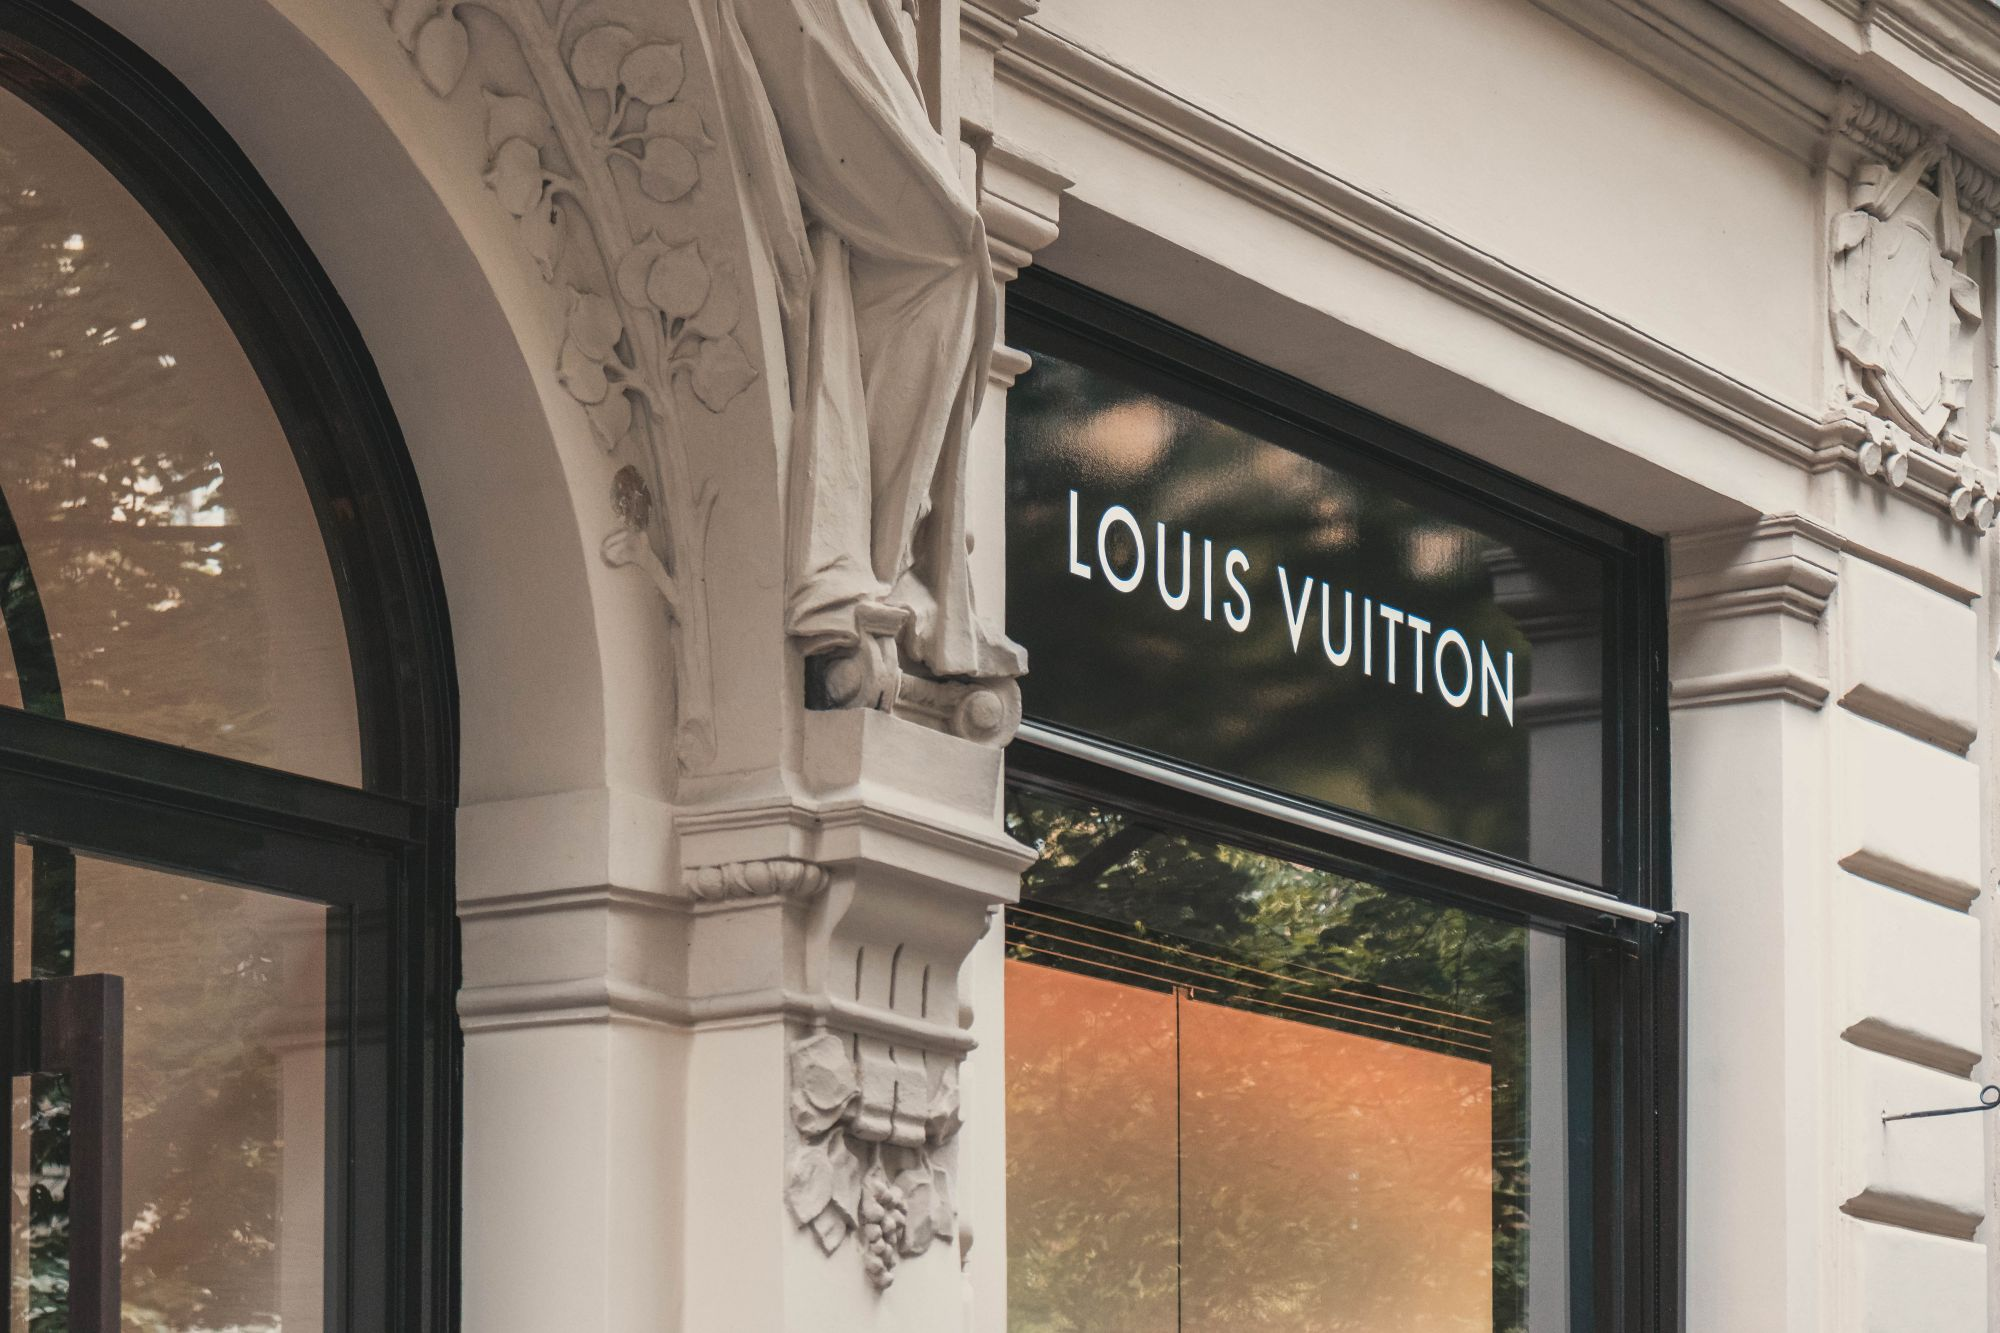 Louis Vuitton Was The World's Most Popular Fashion Brand In 2020